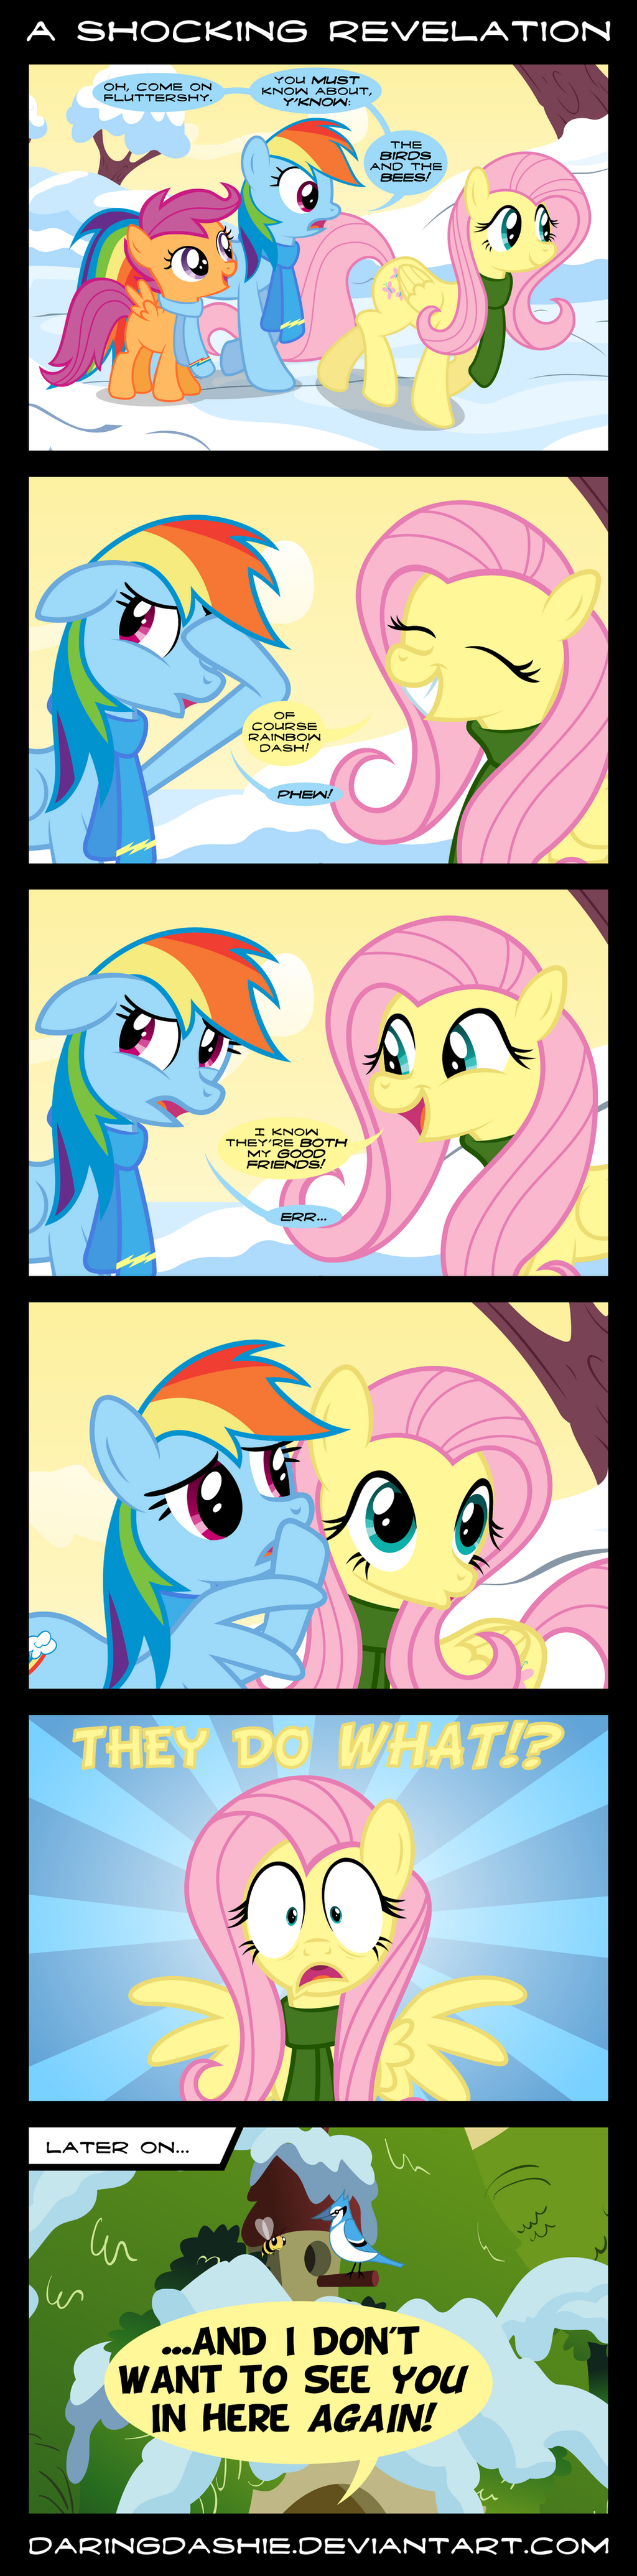 A Shocking Revelation by DaringDashie